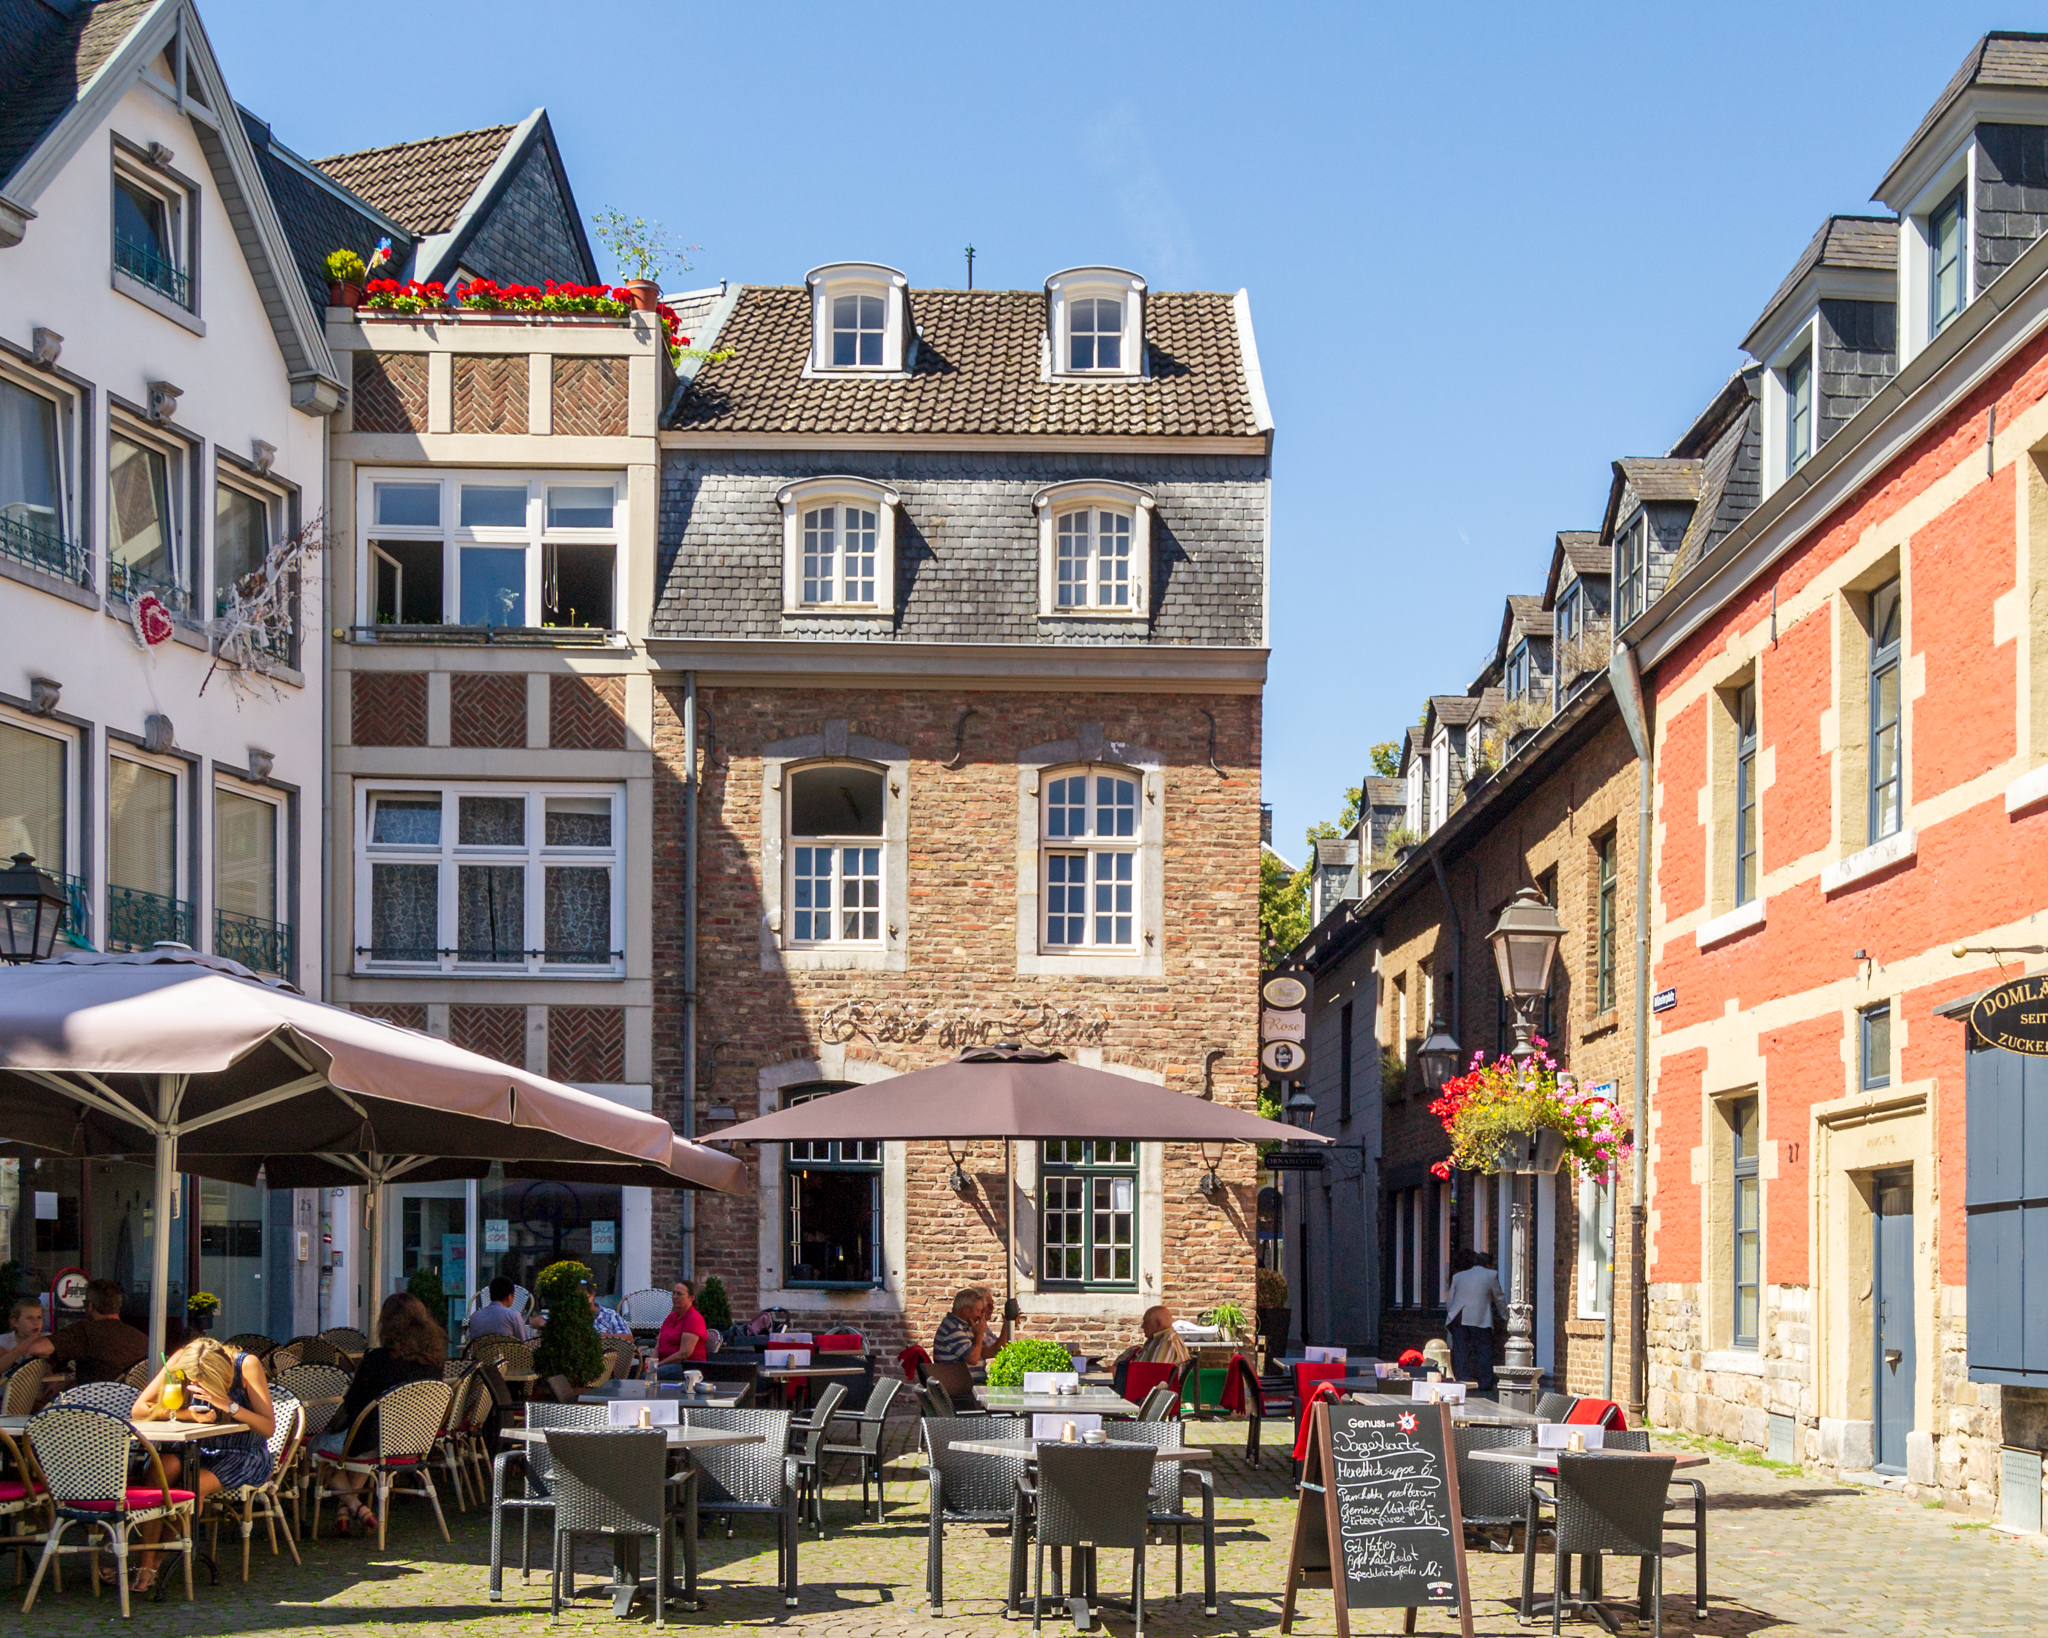 Coffee shops by the Aachen Dom, Germany